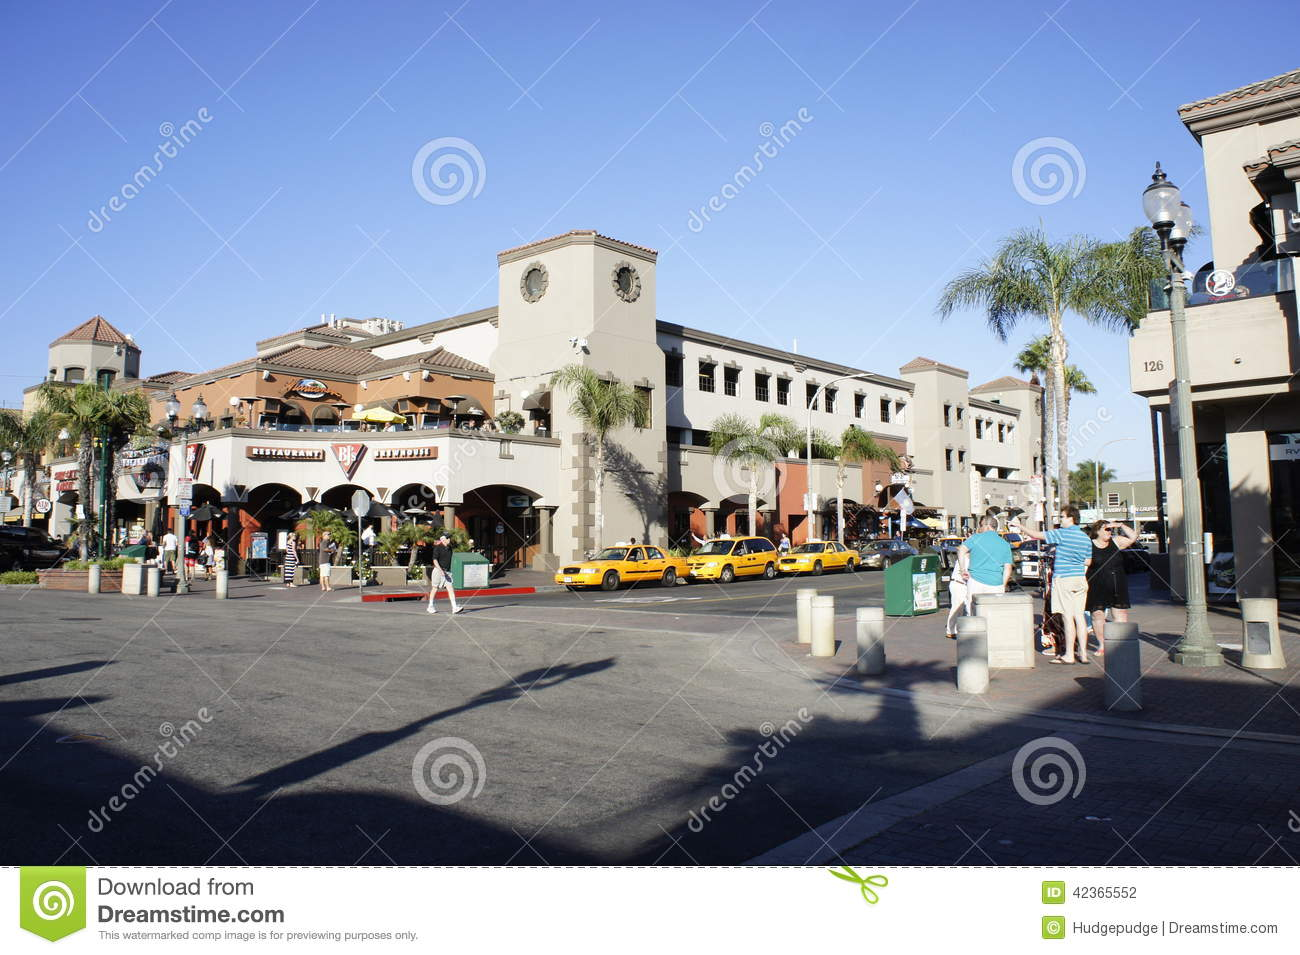 Huntington Beach's Pacific City complex aims to draw ...